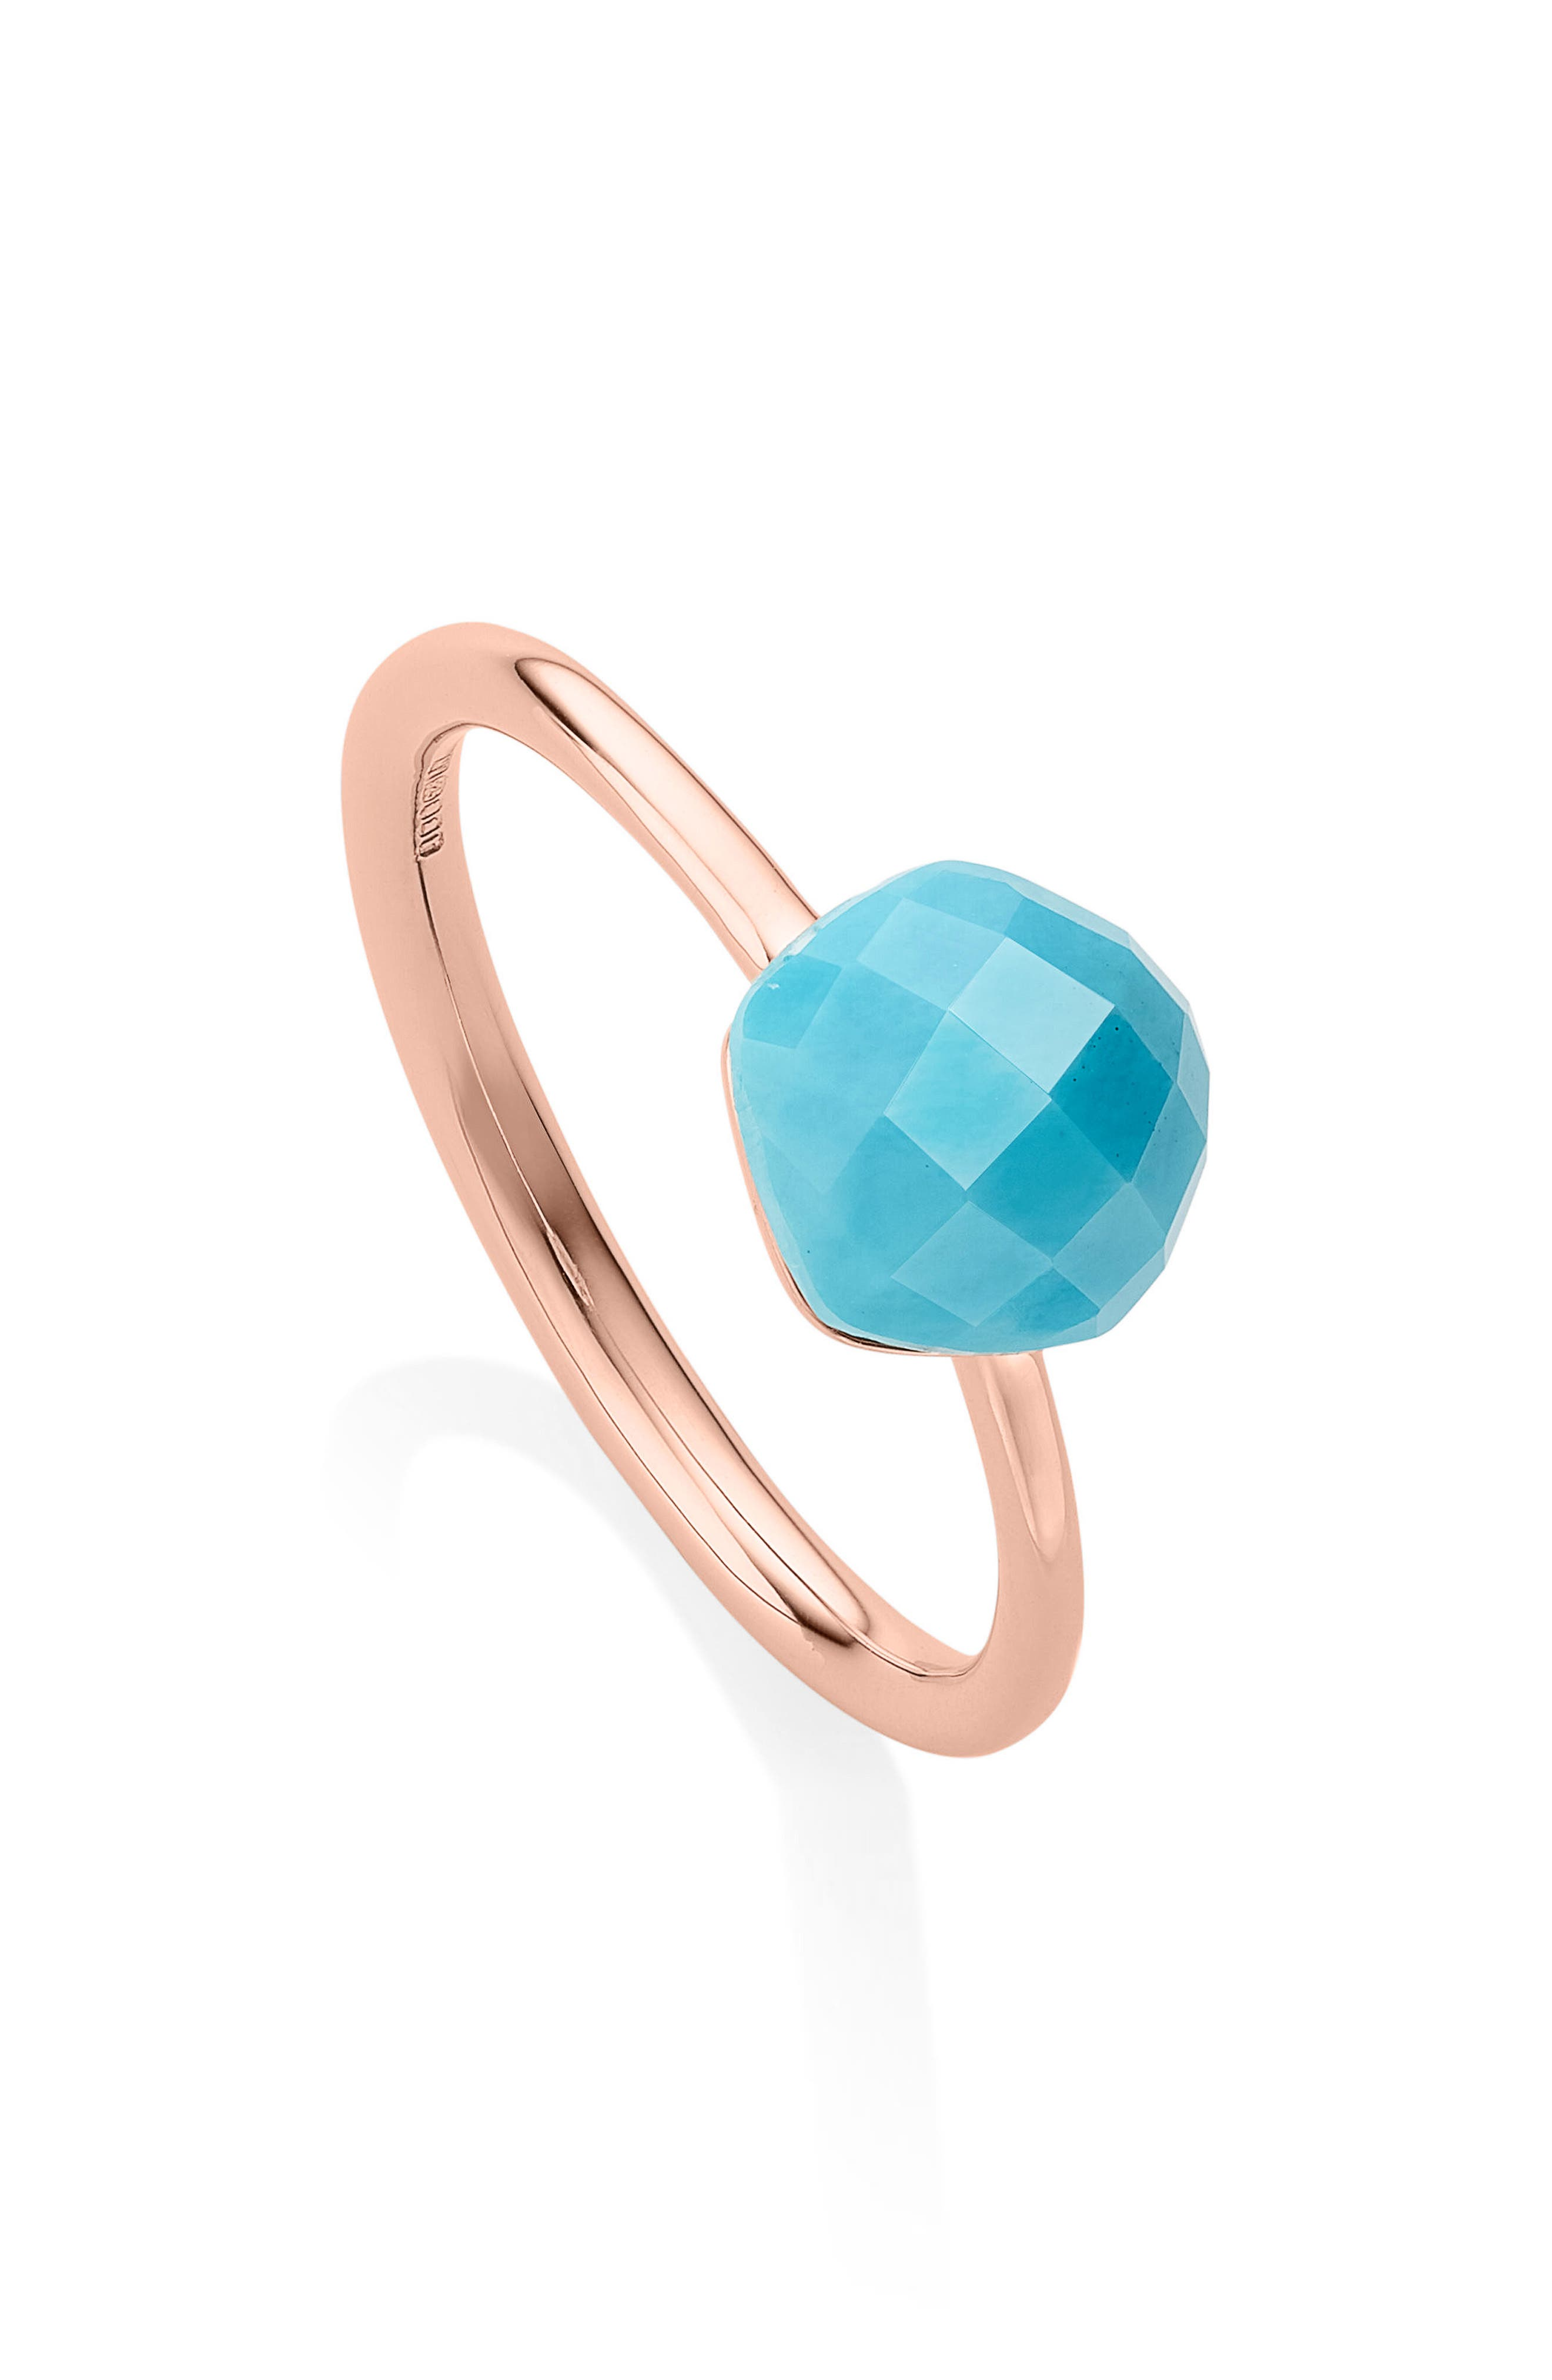 Nura Mini Nugget Stacking Ring,                             Main thumbnail 1, color,                             TURQUOISE